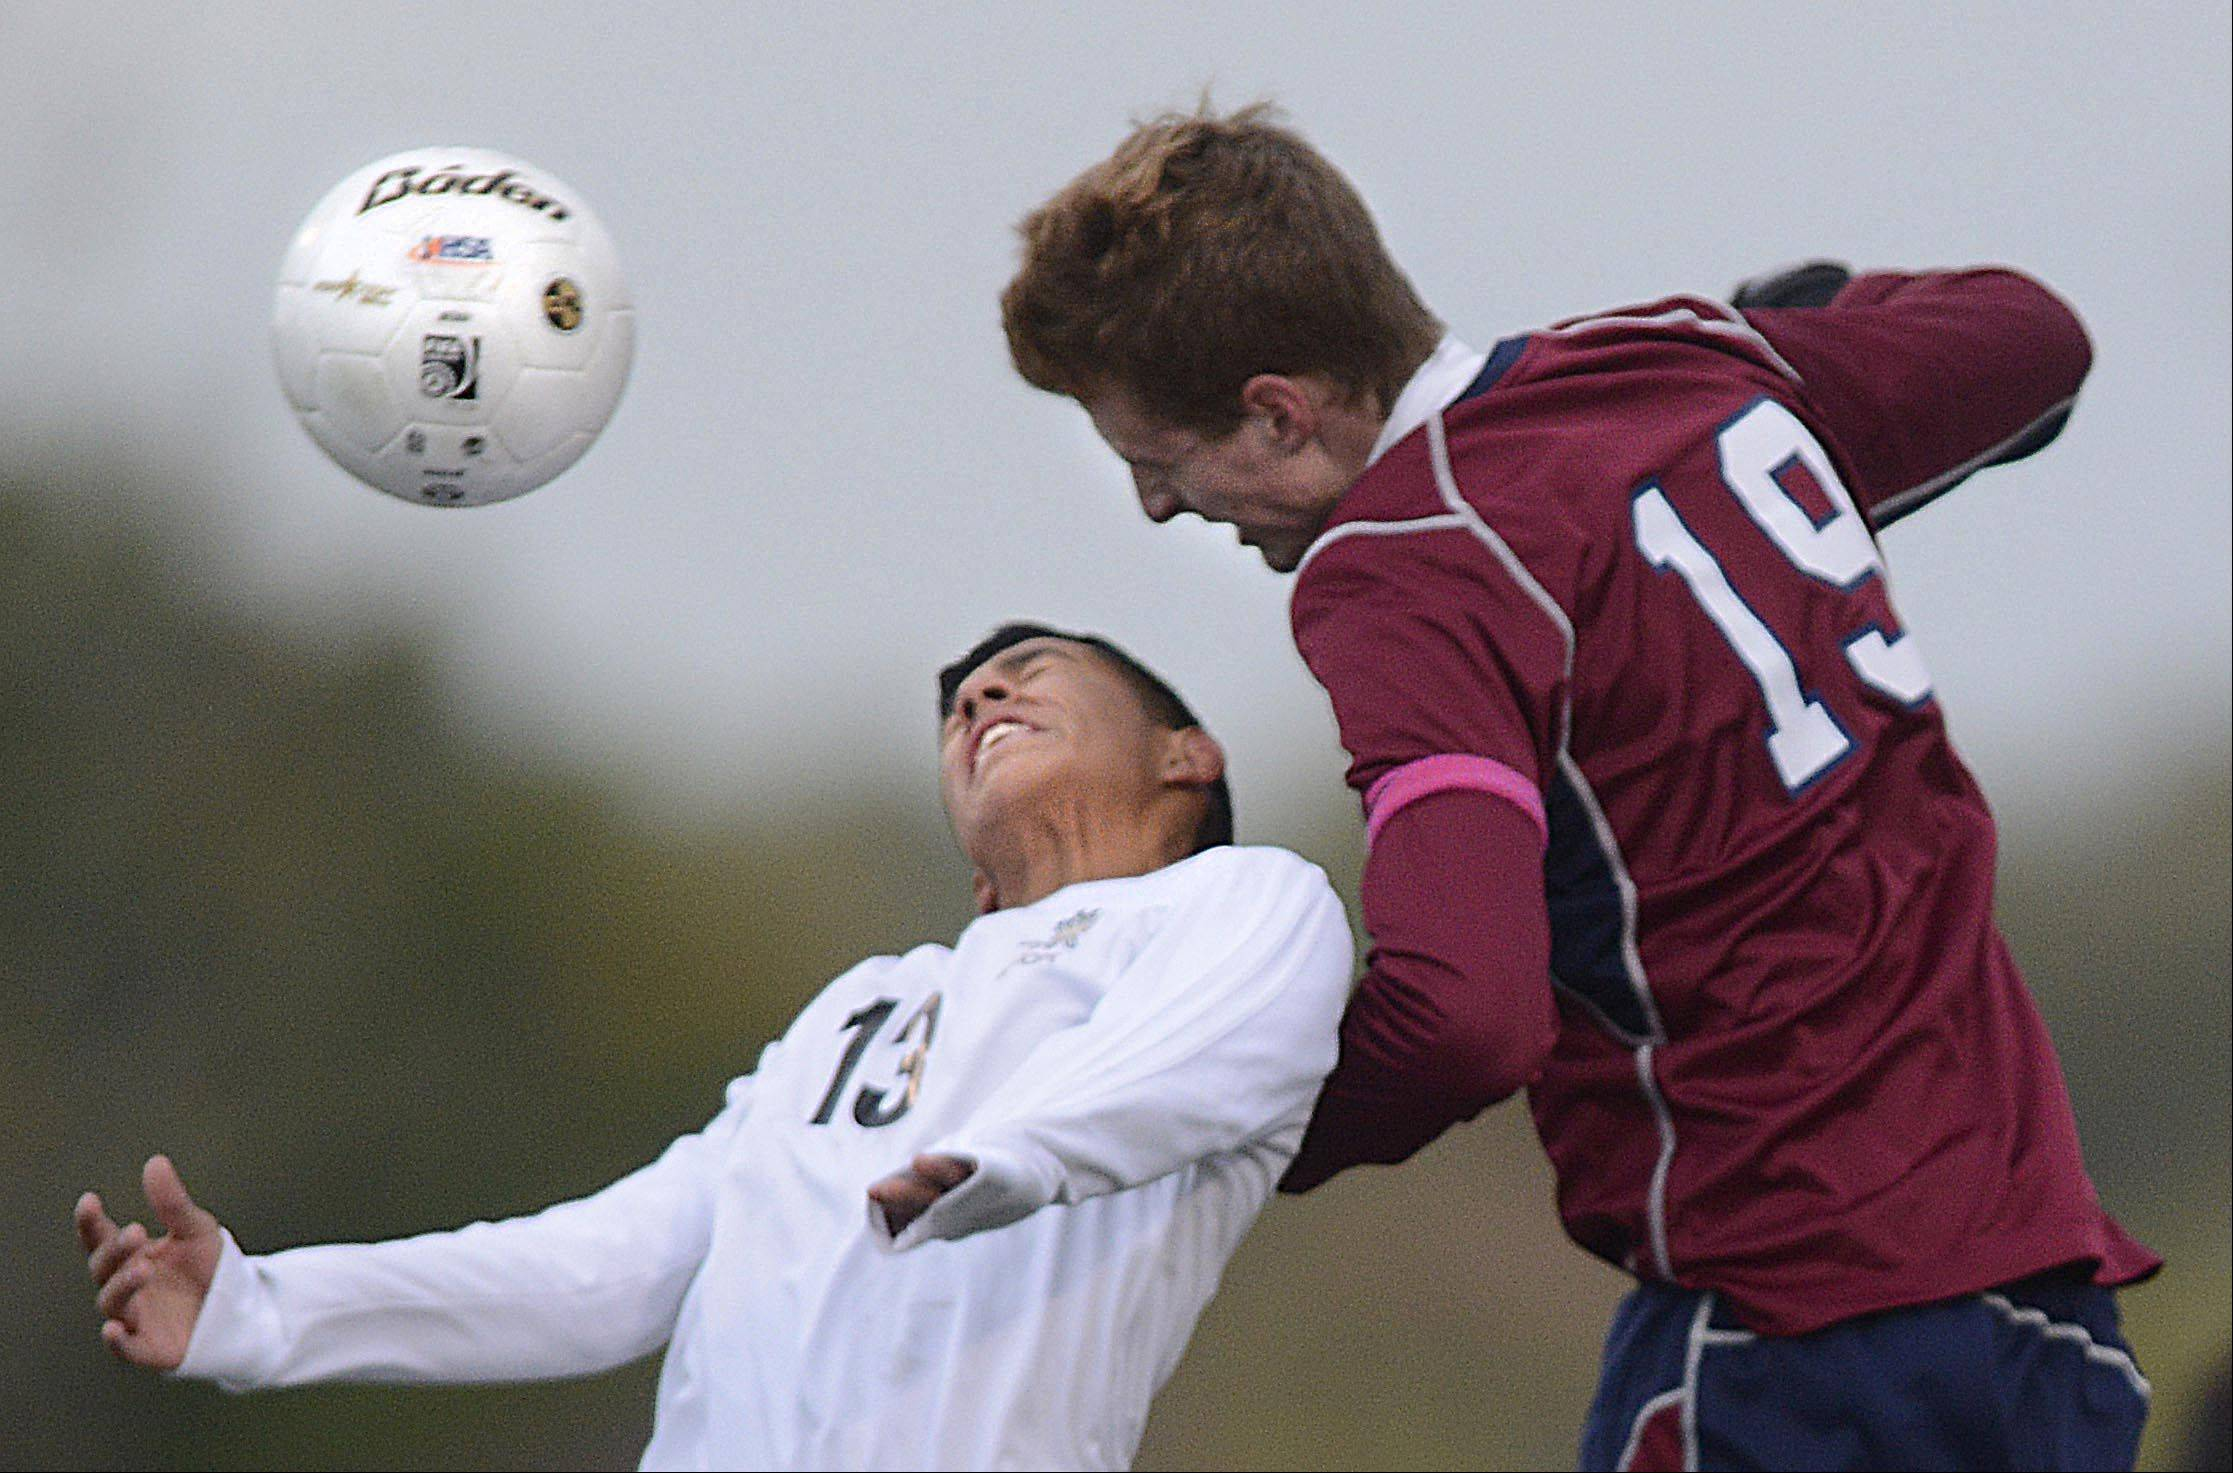 Streamwood's Donnie Sosa and South Elgin's Owen Bott, right, compete for a header Wednesday at Millennium Field in Streamwood.